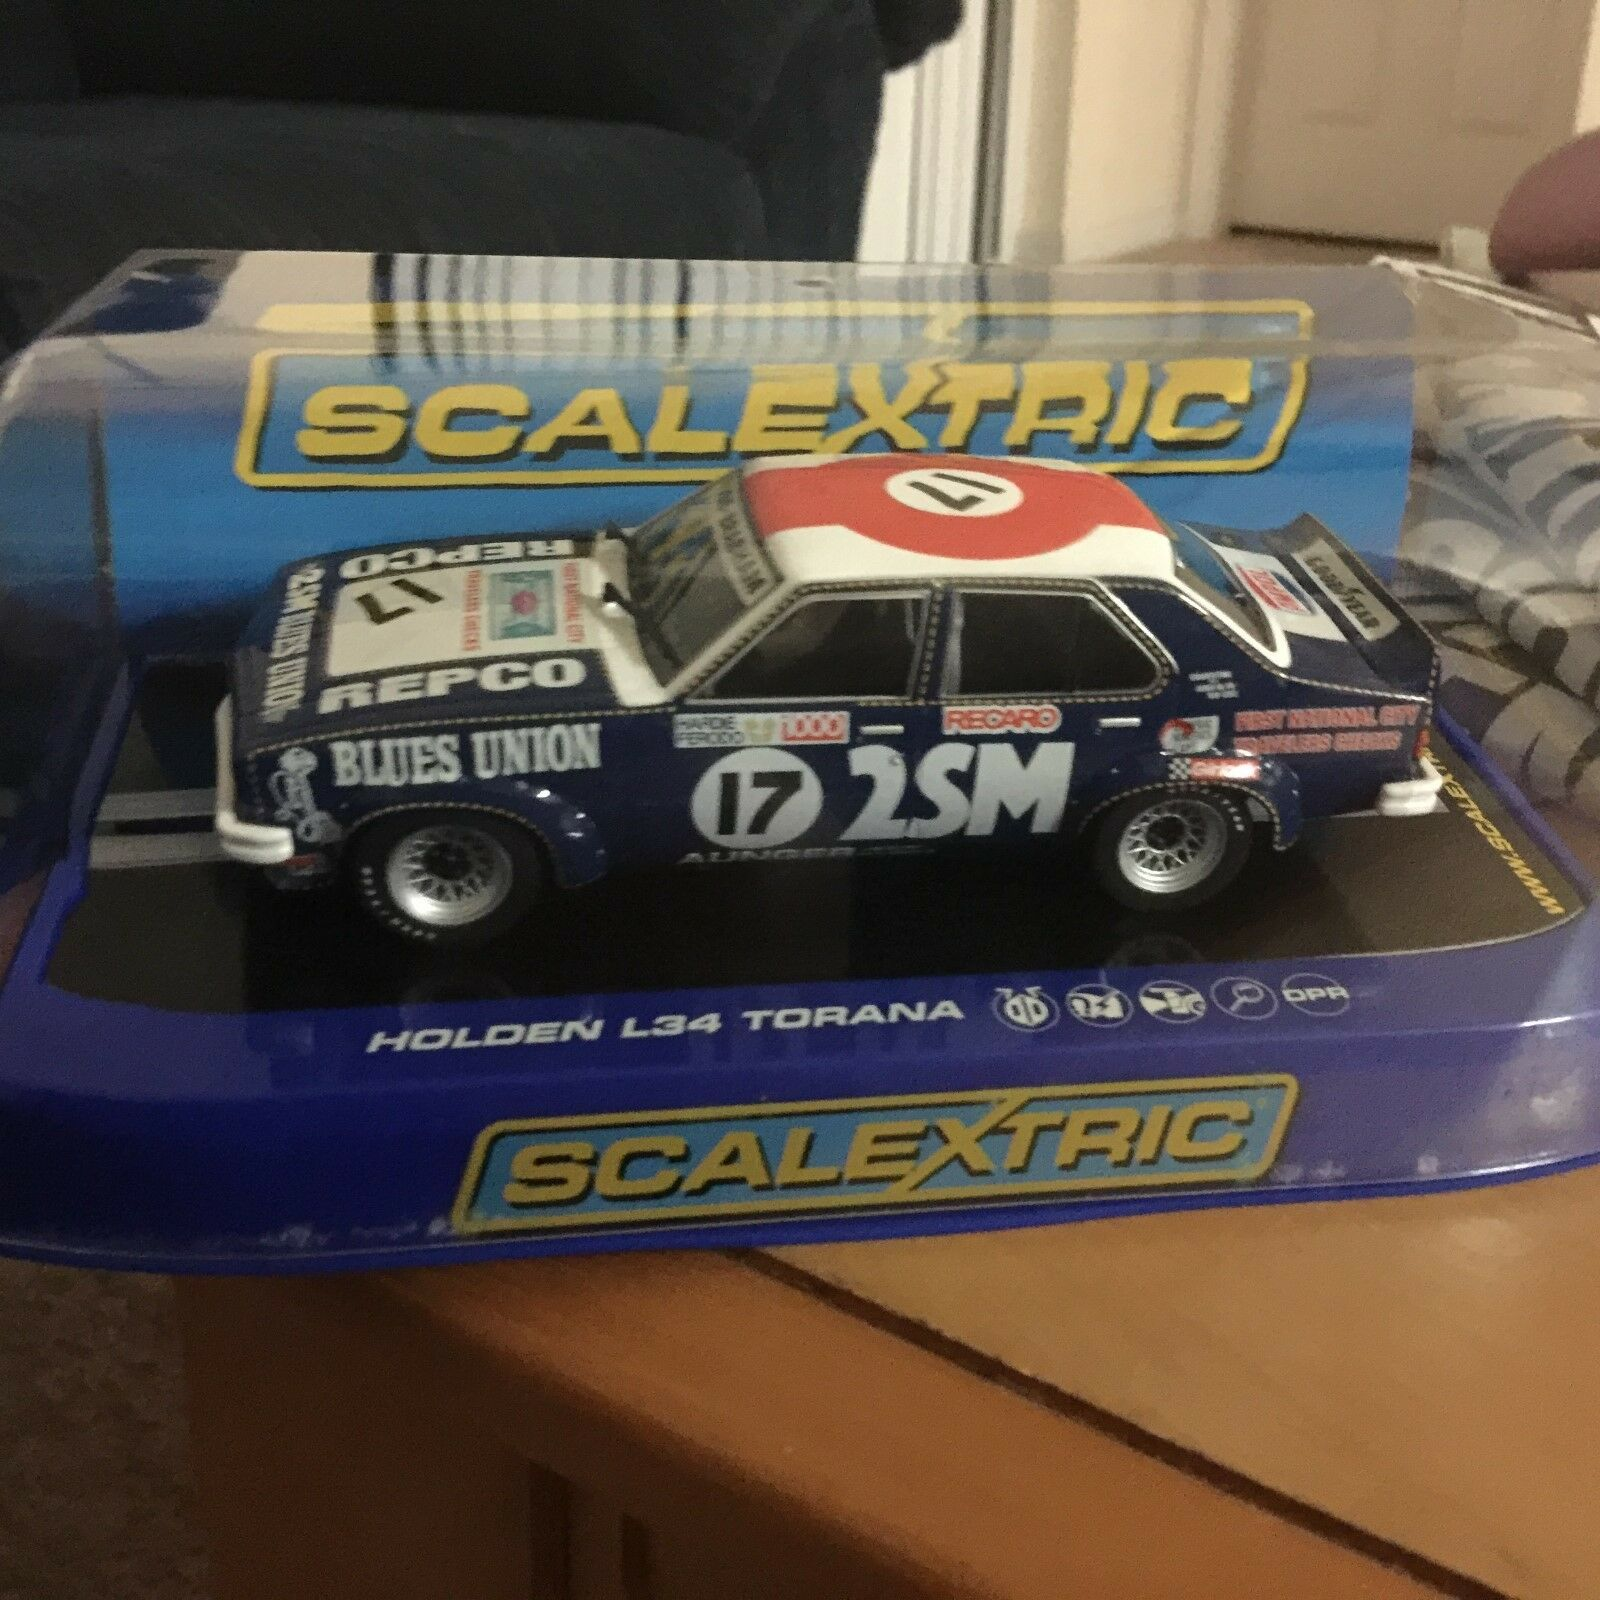 Scalextric Holden L34 Torana DPR C3304 Rare Deleted M B New Boxed